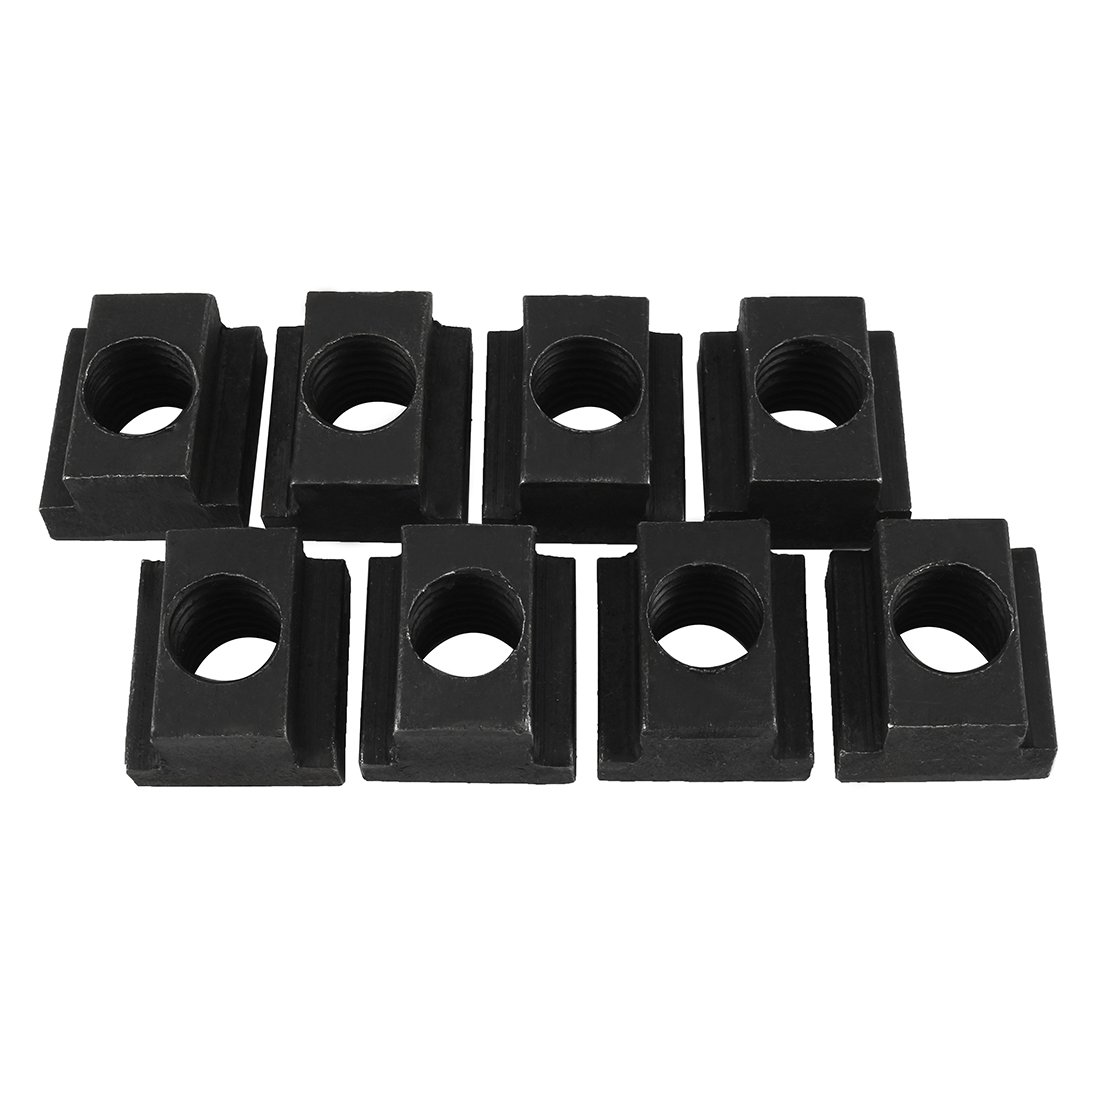 Aexit M14 Thread Nuts T-Slot Nut Black Oxide Plated Grade 8.8 Tapped T-Slot Nuts Through 8pcs by Aexit